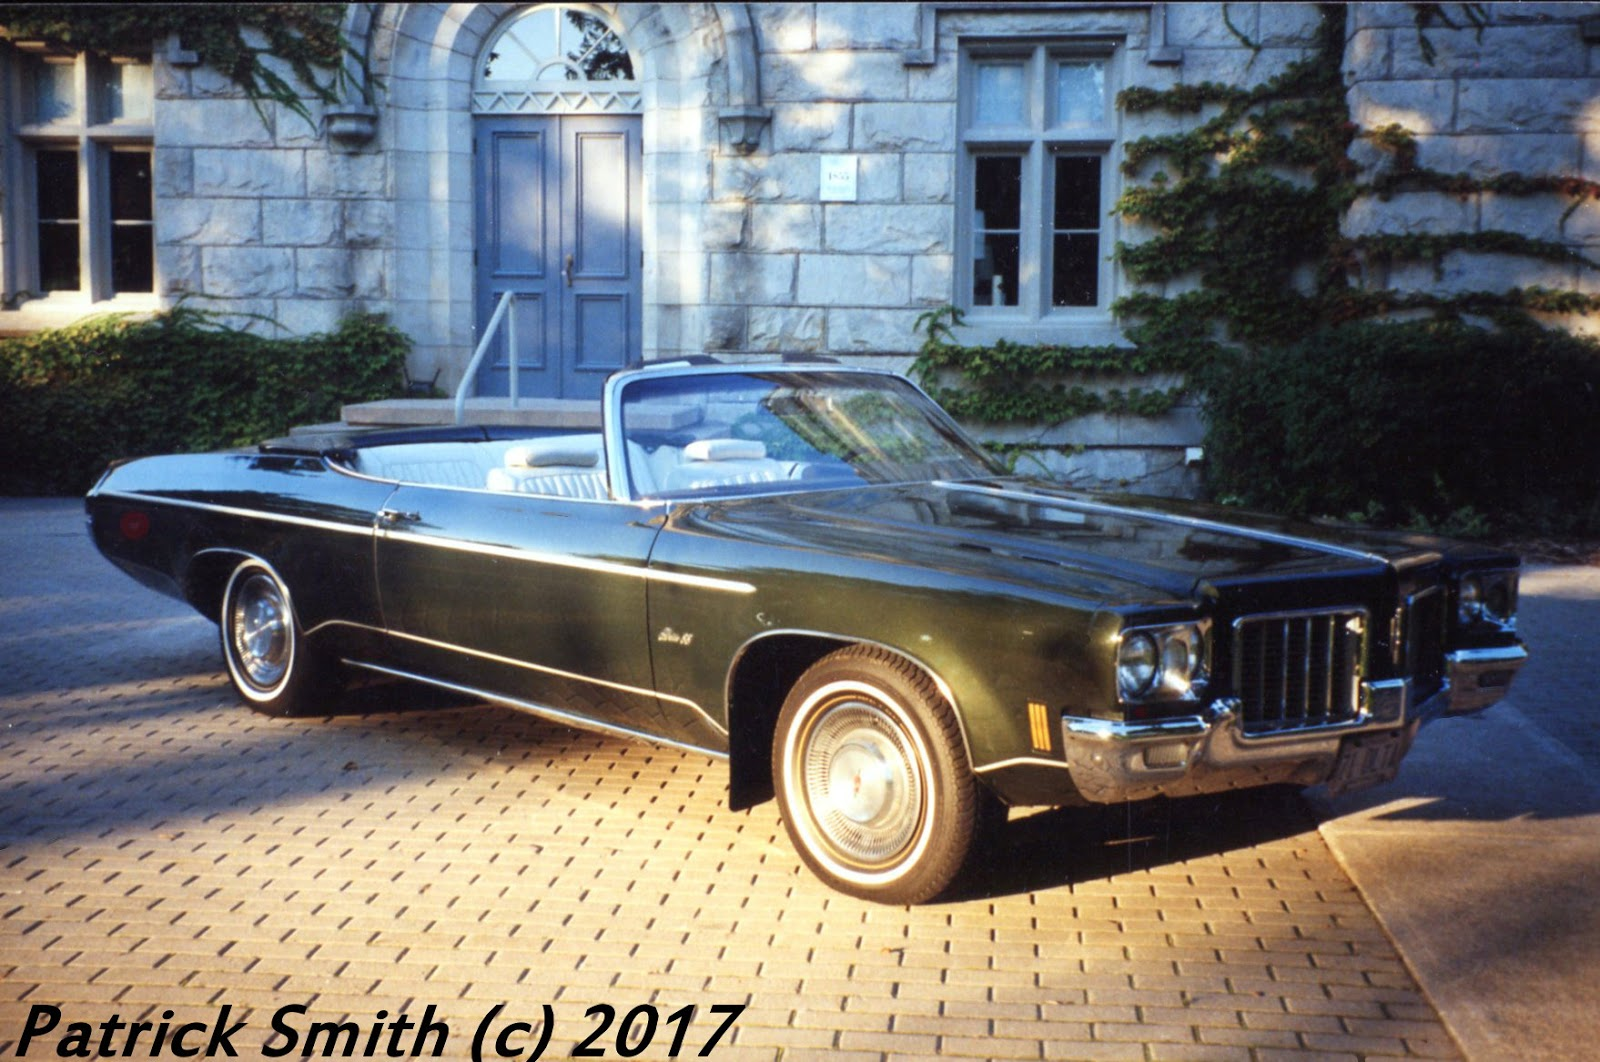 1971 Oldsmobile Delta 88 Convertible Phscollectorcarworld 1960 Pontiac Catalina Wiring Diagrams Bill Restored The Car Close To Stock Condition A Few Minor Changes Were Made For Driving Enjoyment